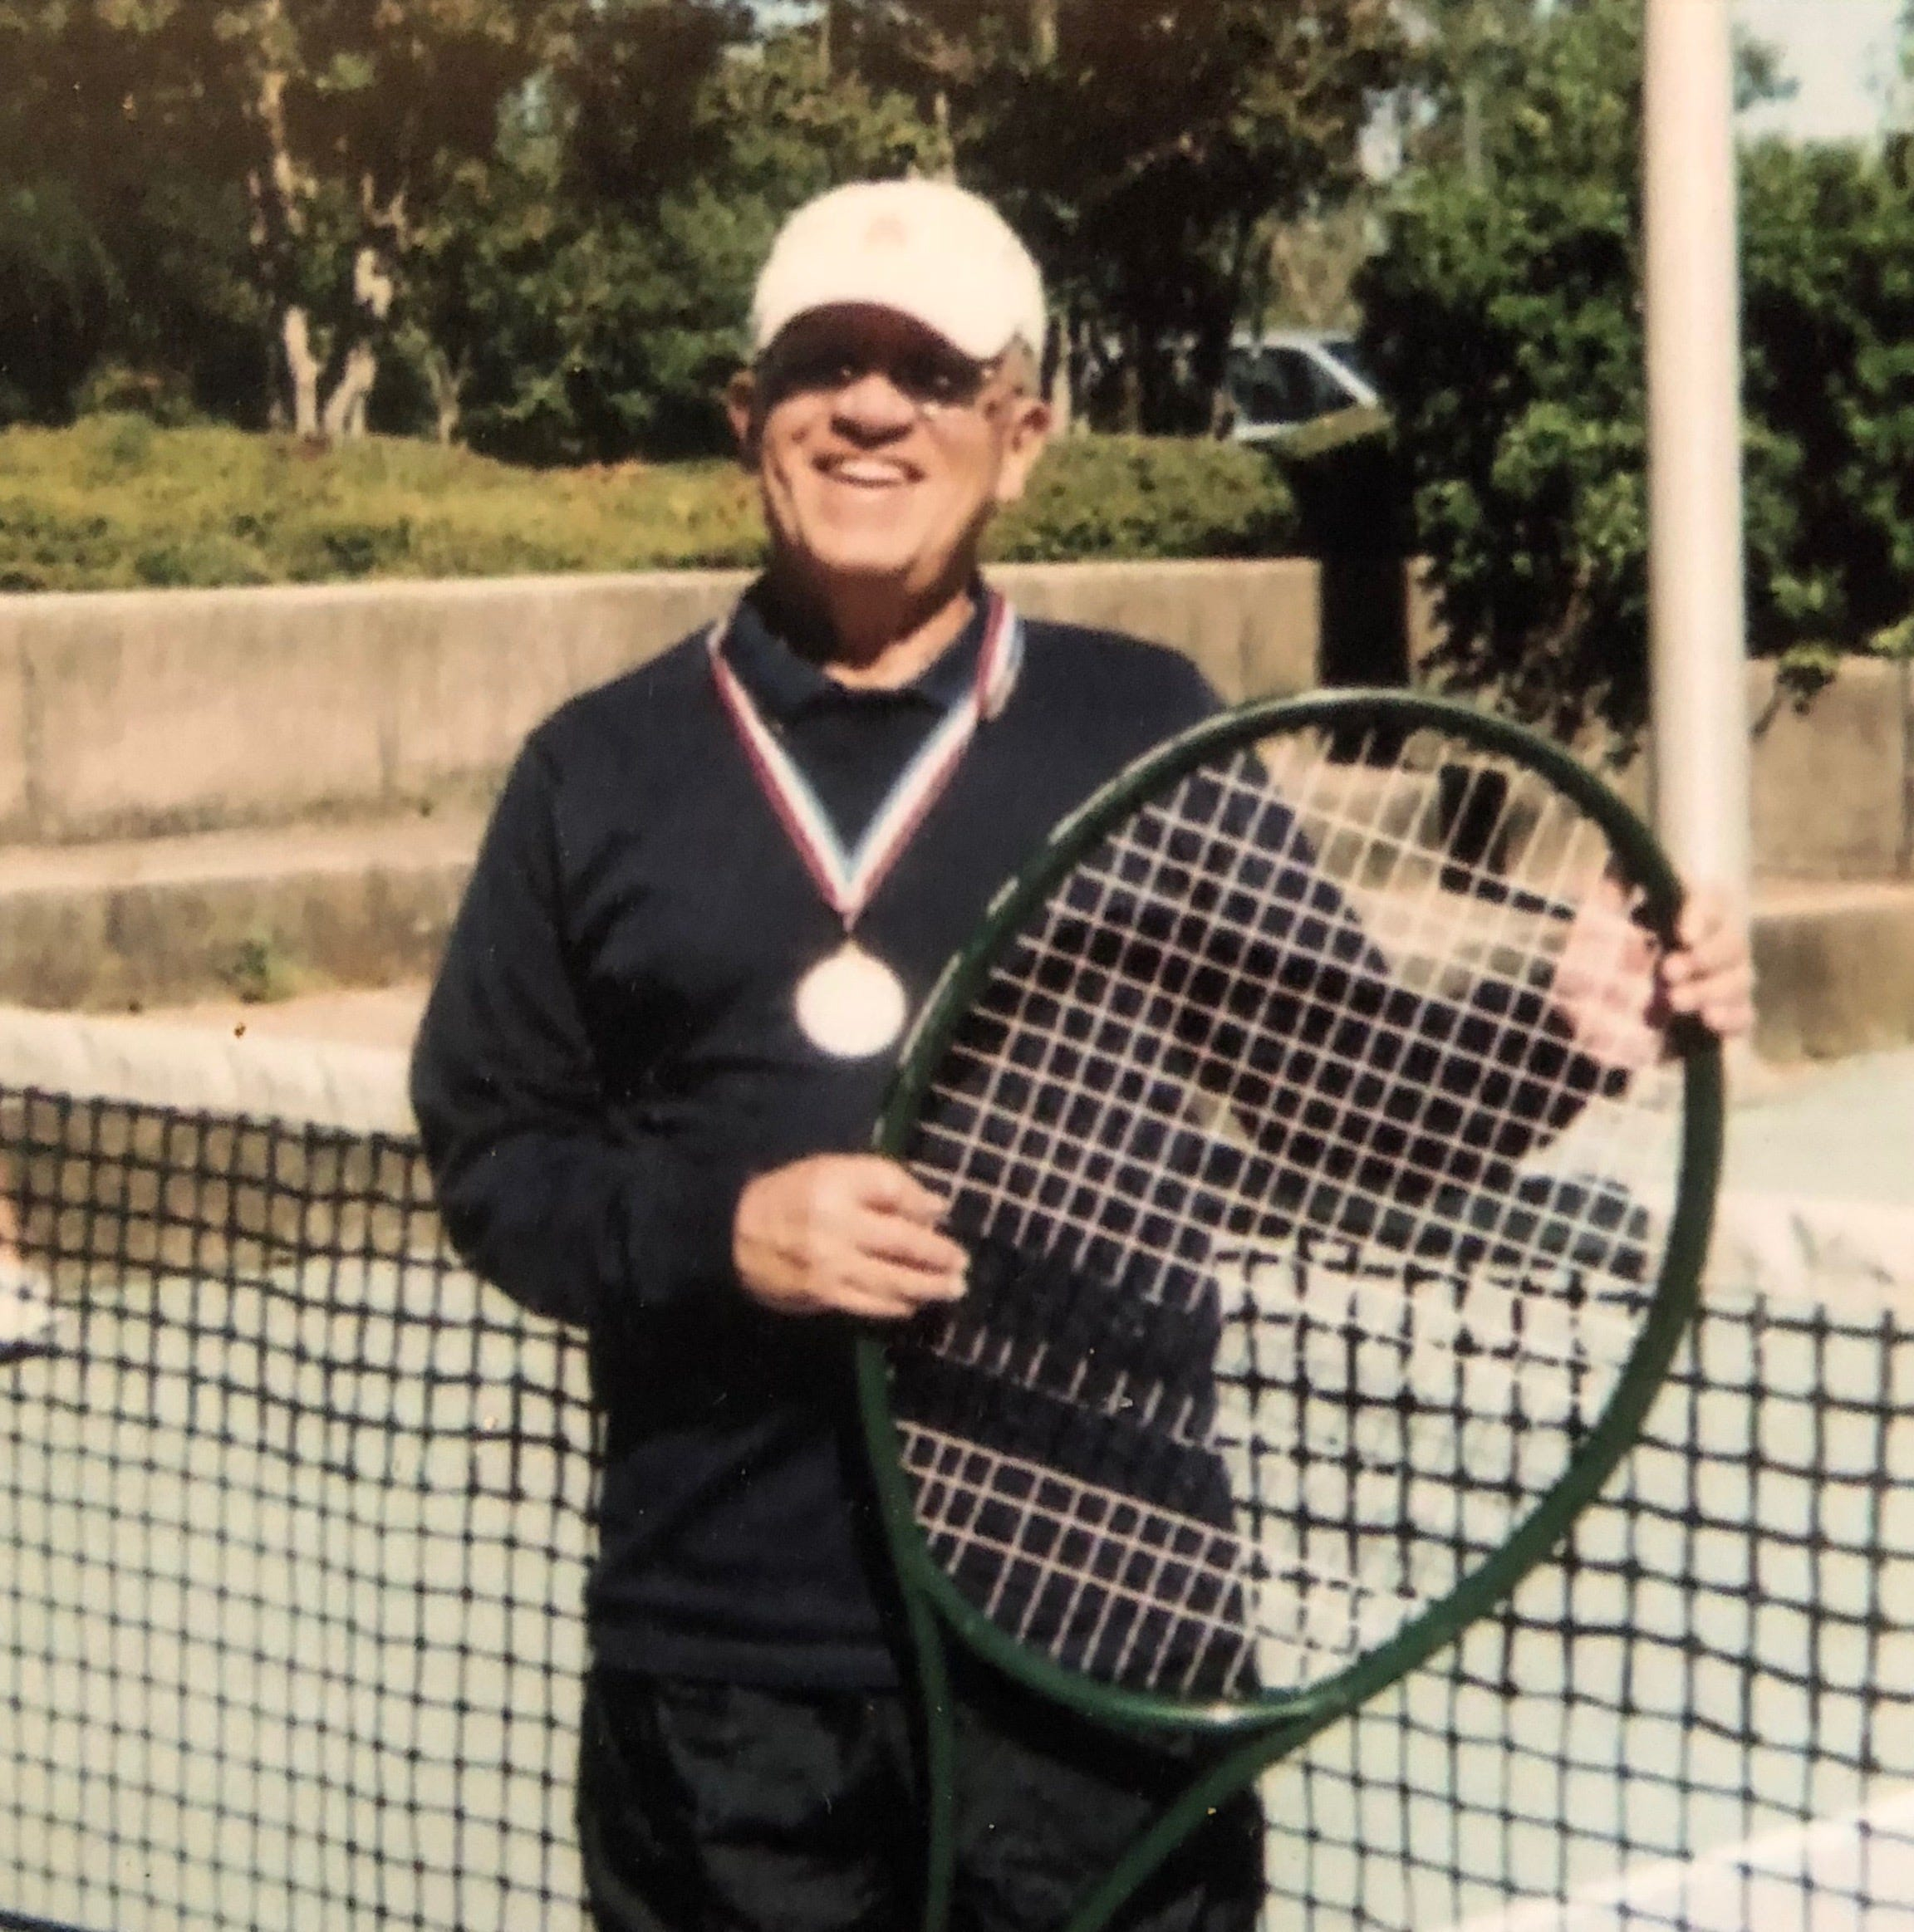 Longtime local tennis benefactor Joe Lovoy leaves legacy of kindness, passion for sport